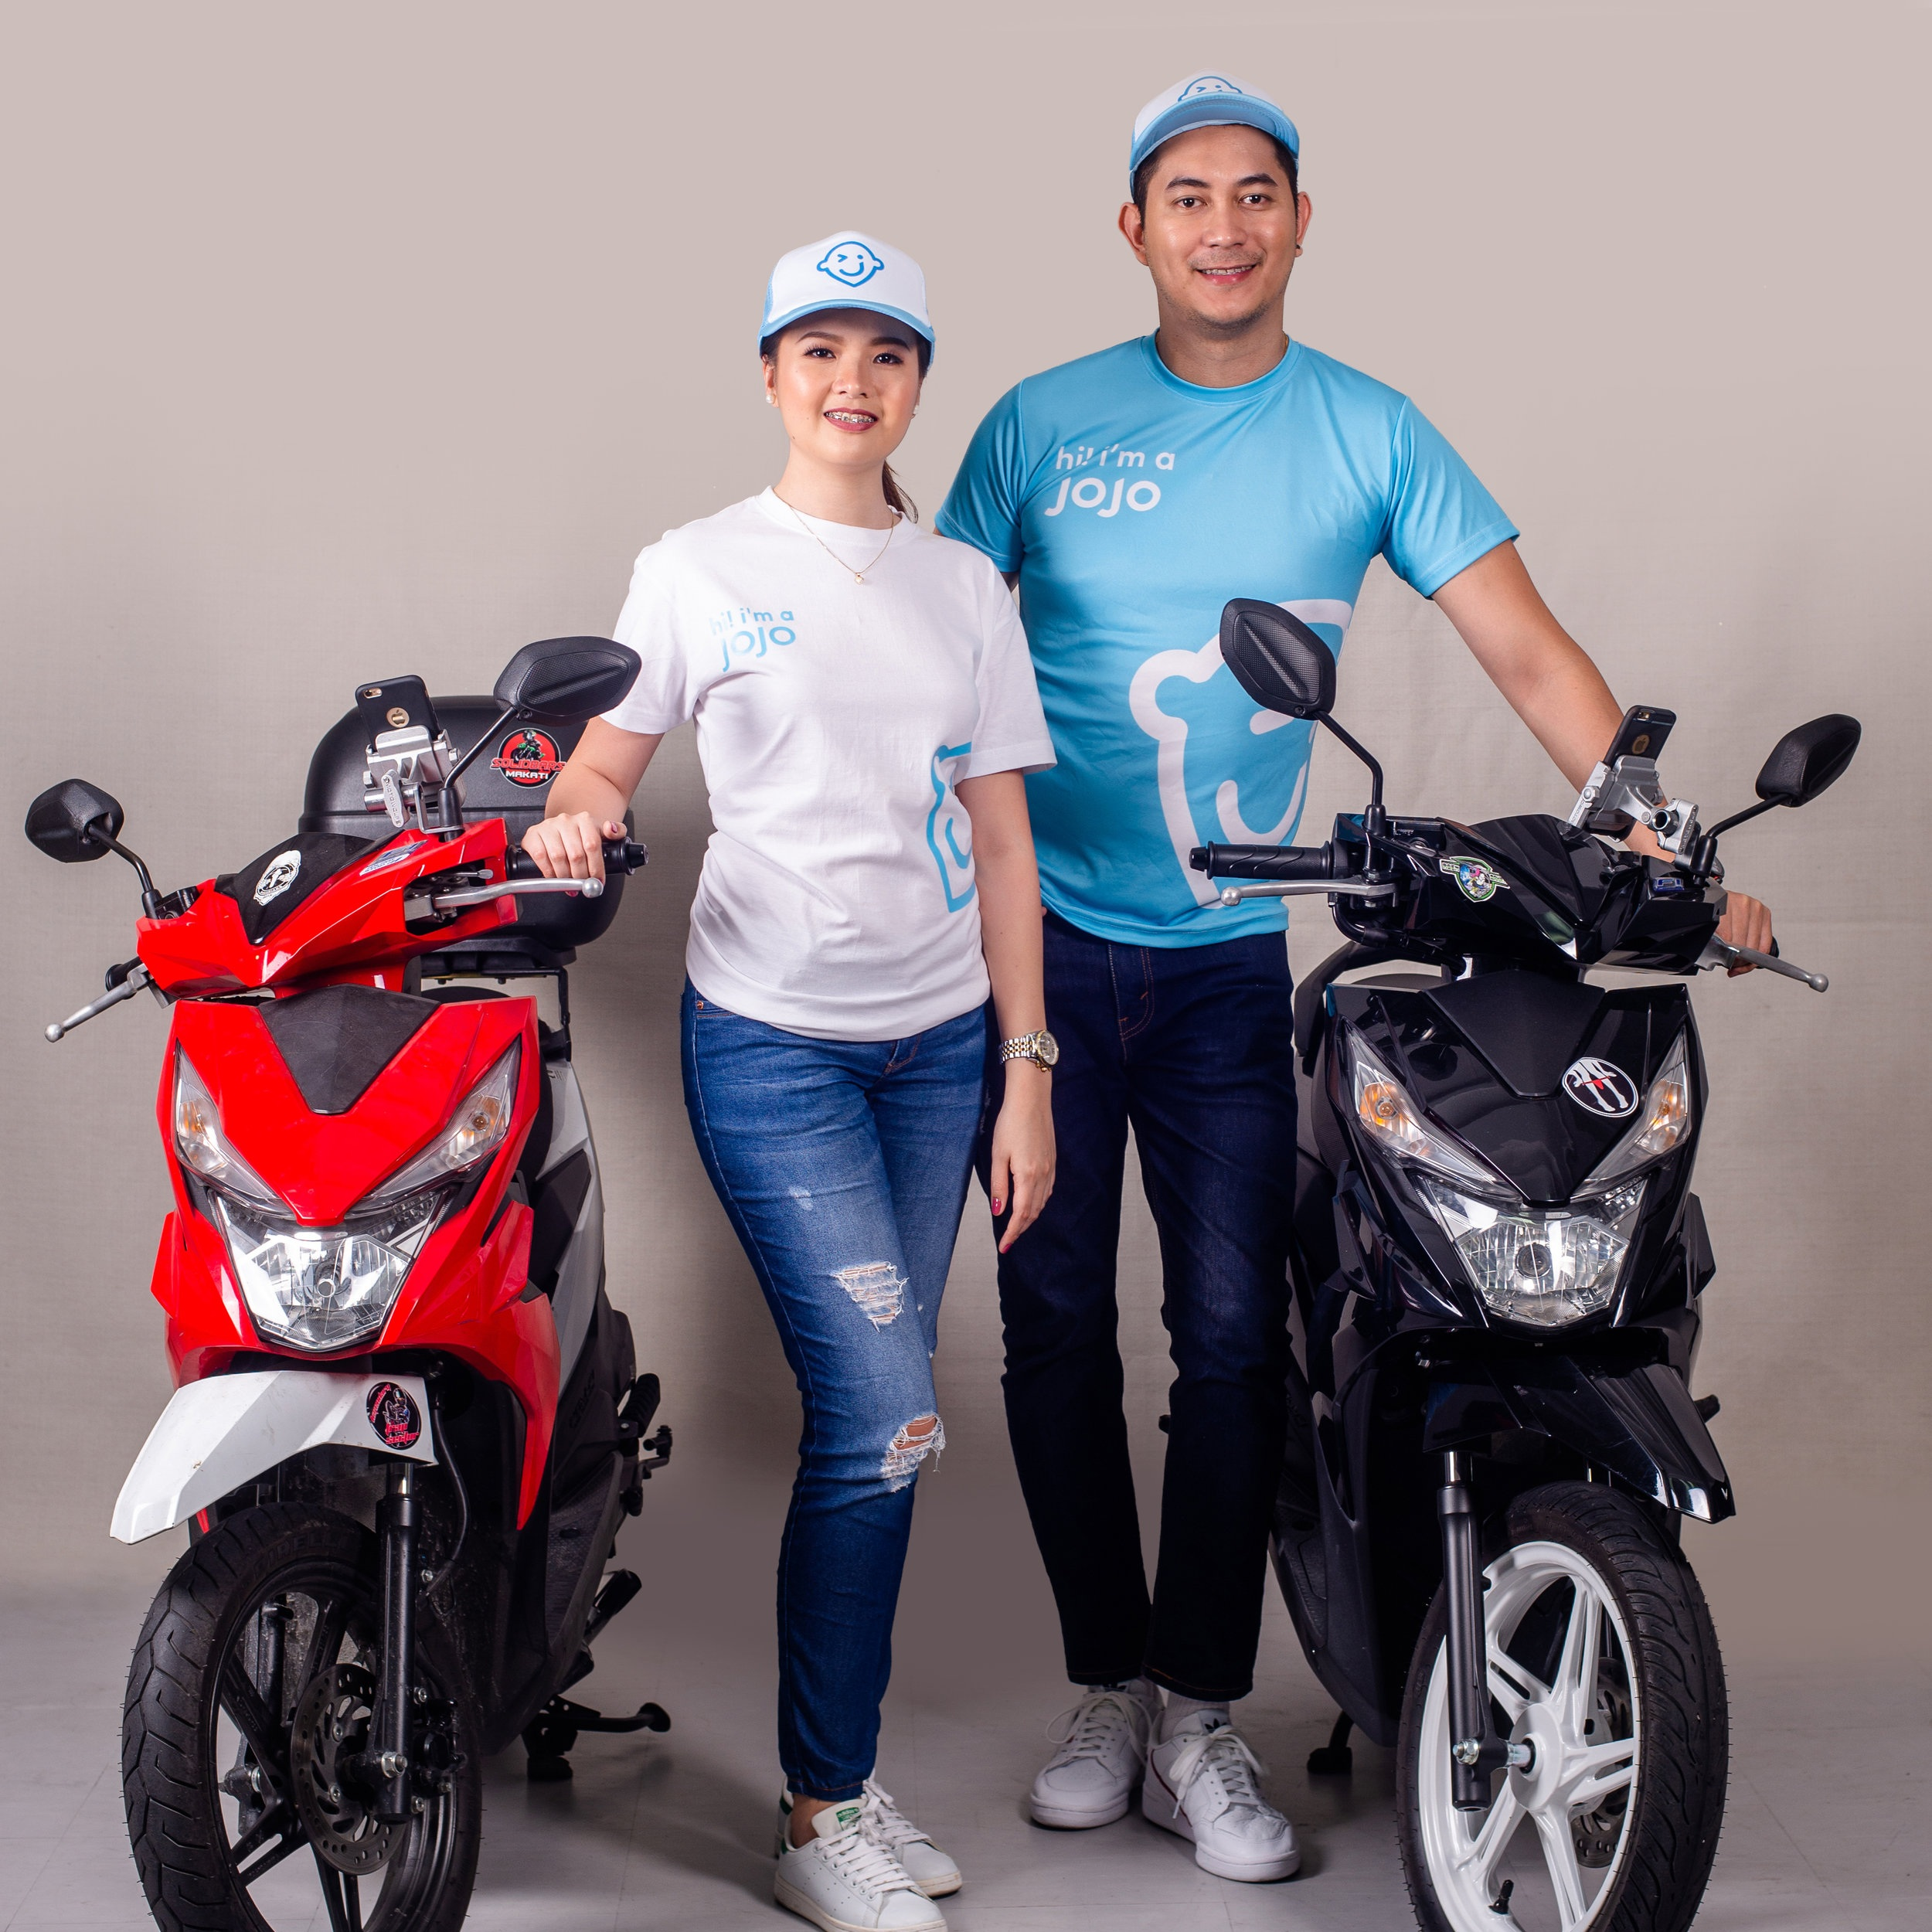 Motorcycle rider - Faster mode of transport, perfect for small or medium-sized packages